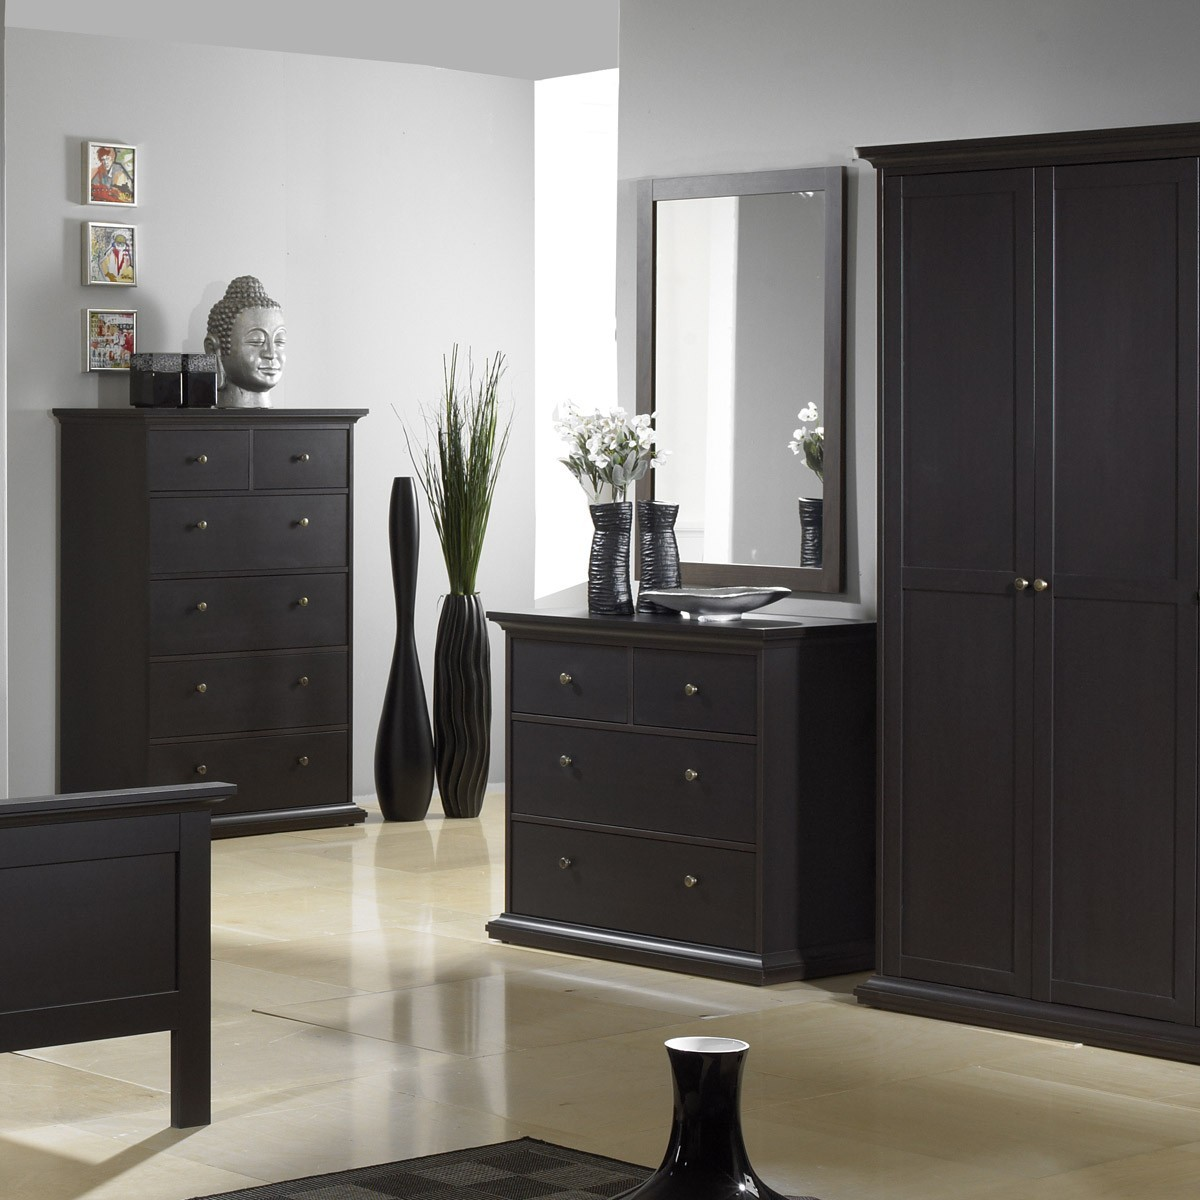 kleiderschrank dunkelbraun. Black Bedroom Furniture Sets. Home Design Ideas